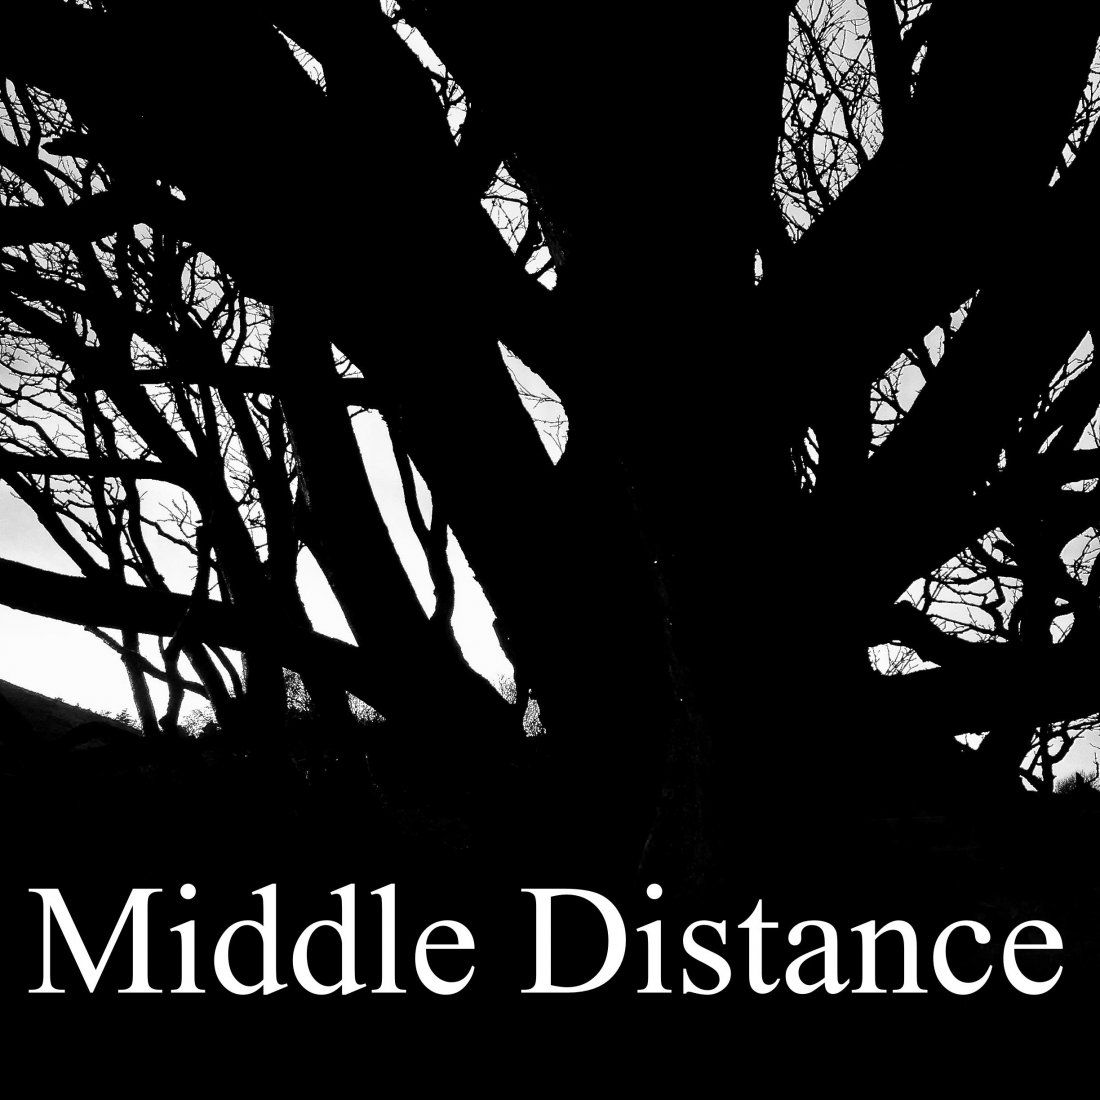 Middle Distance - launch party